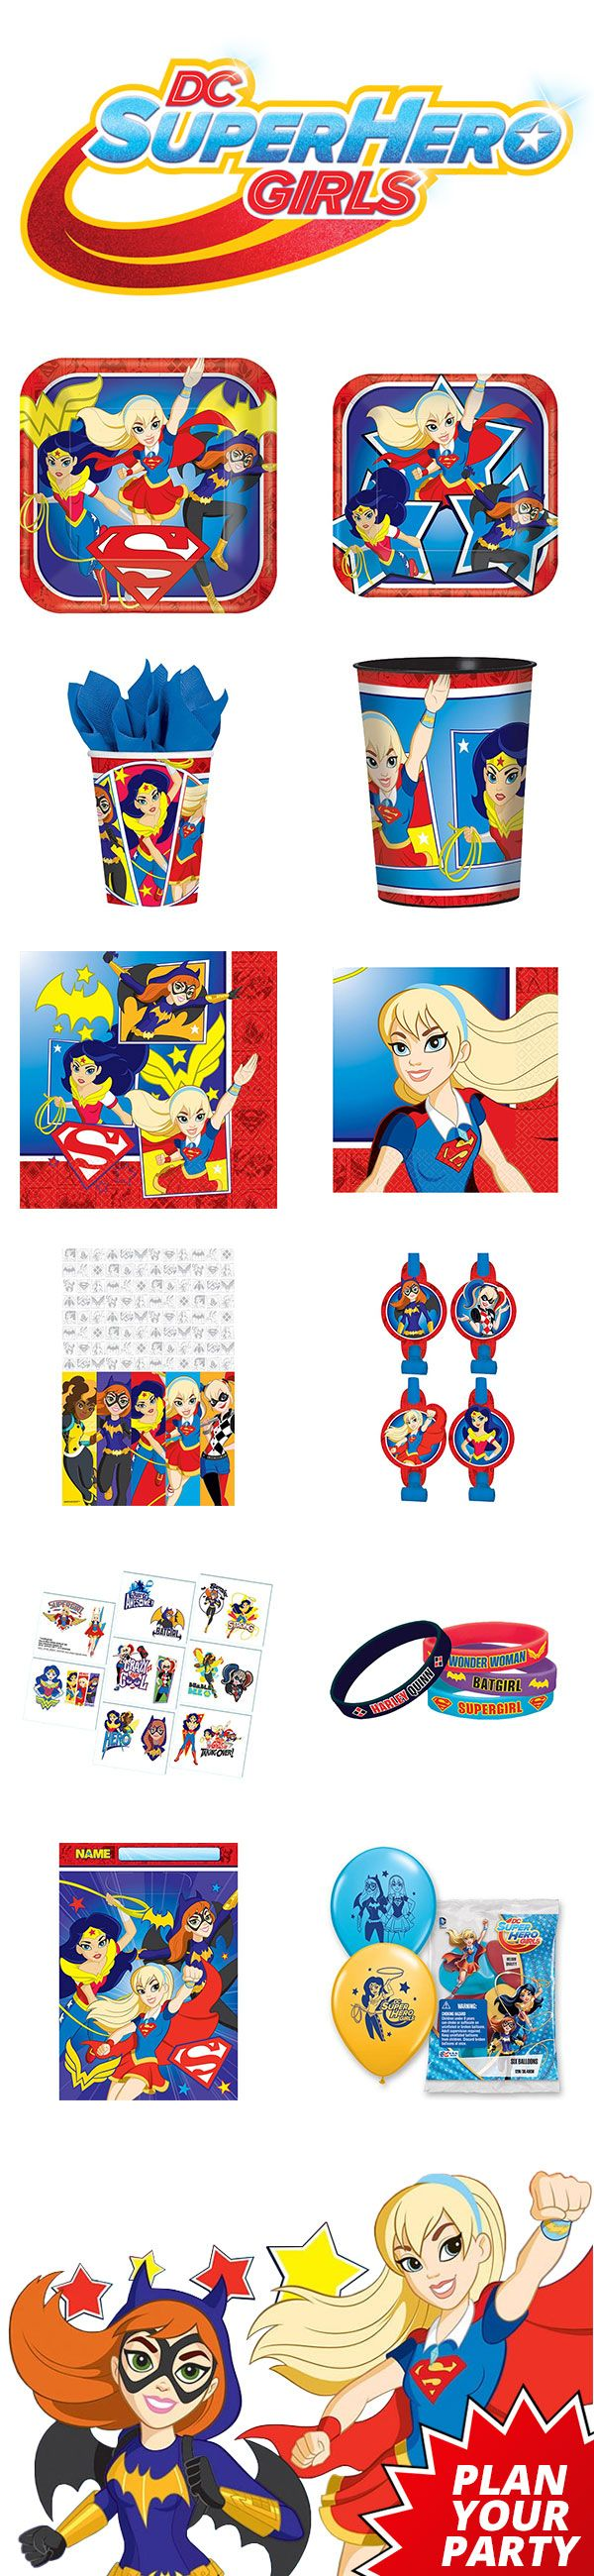 Our DC Superhero Girls party supplies features a full line of tableware, favors, decorations, and other super-fun supplies for your birthday party. Visit us today to plan your party: http://www.discountpartysupplies.com/girl-party-supplies/supergirl-party-supplies?utm_source=Pinterest&utm_medium=Social&utm_content=pinterest_theme_board&utm_campaign=superhero_girls_Promoted_Pin